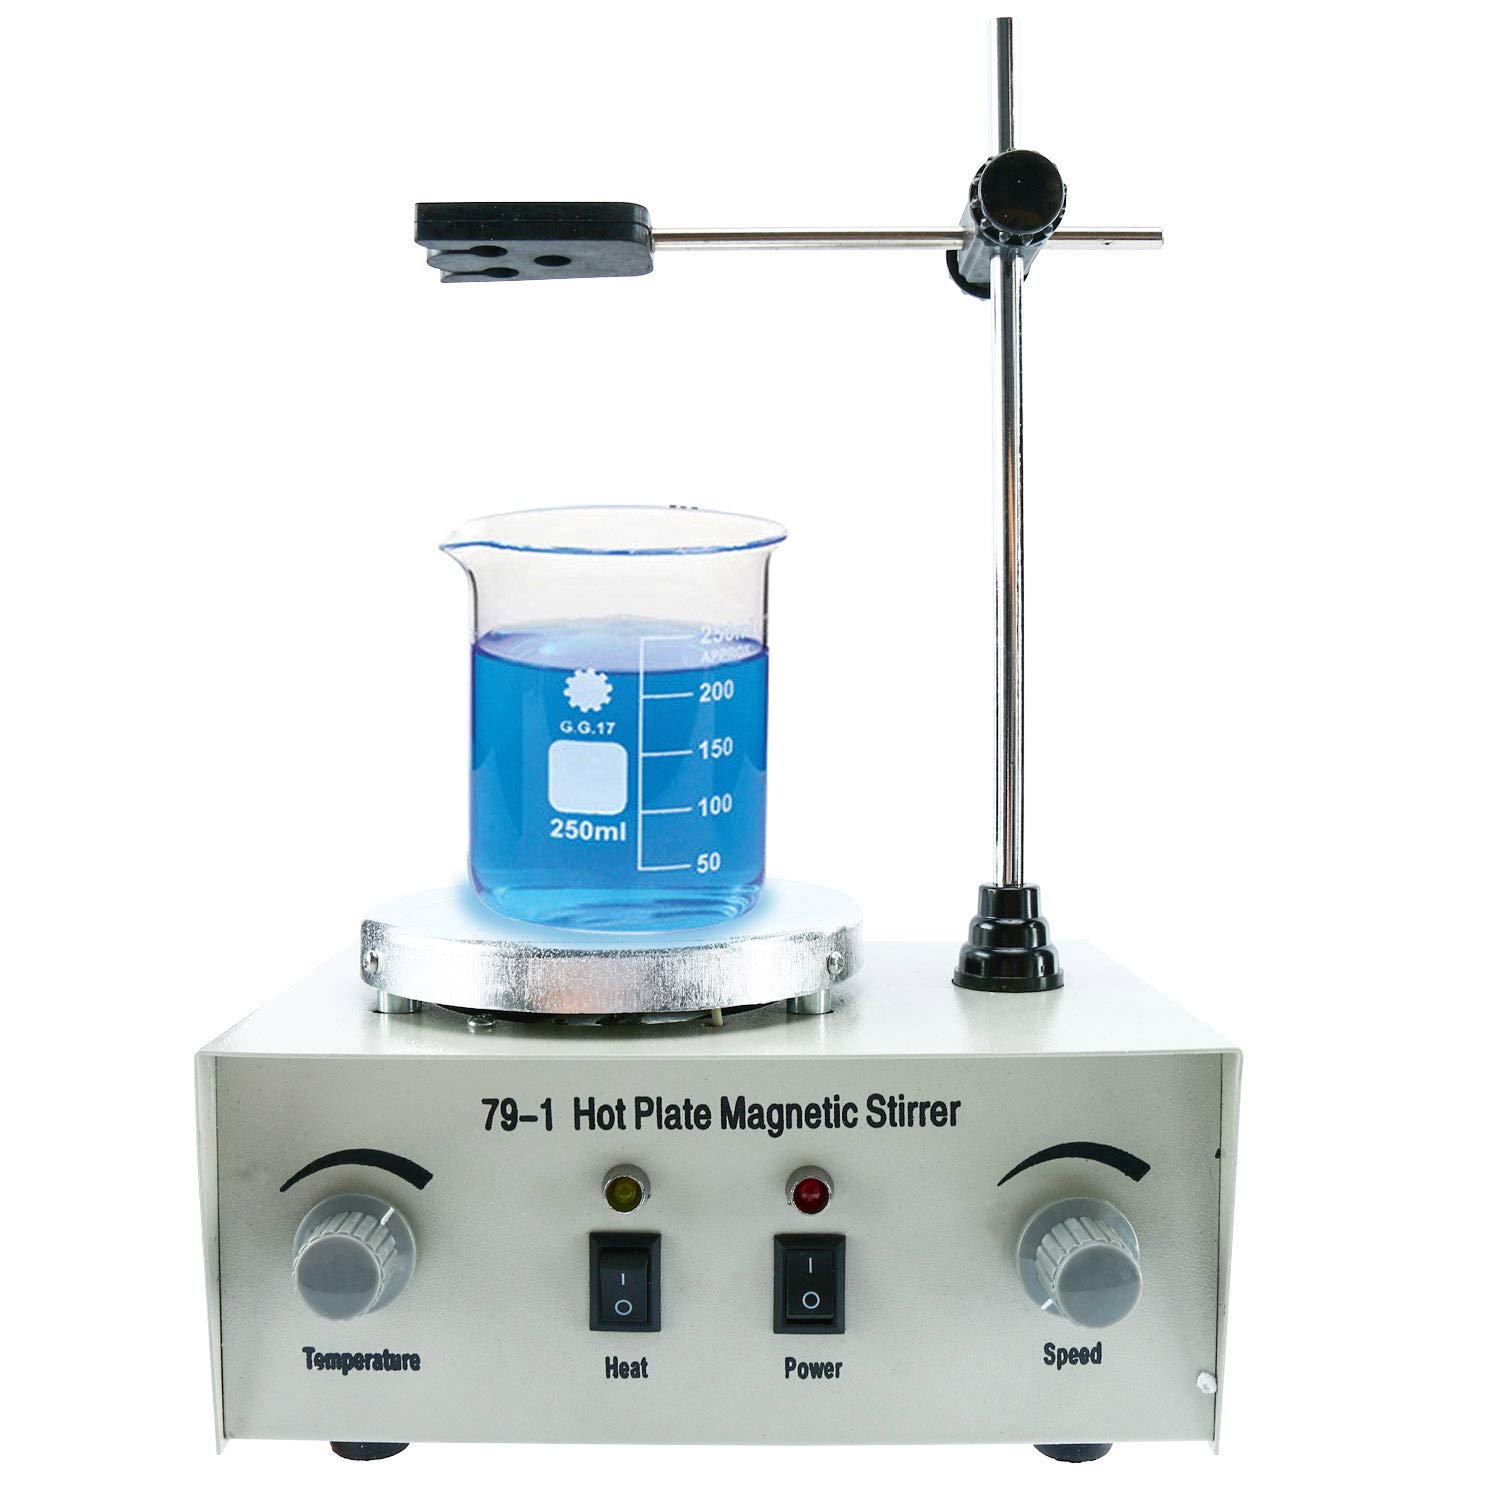 1000ml Adjustable Hotplate Mixer Heat Plate Magnetic Stirrer with stir bar 79-1 110V 2400 RPM by YaeCCC